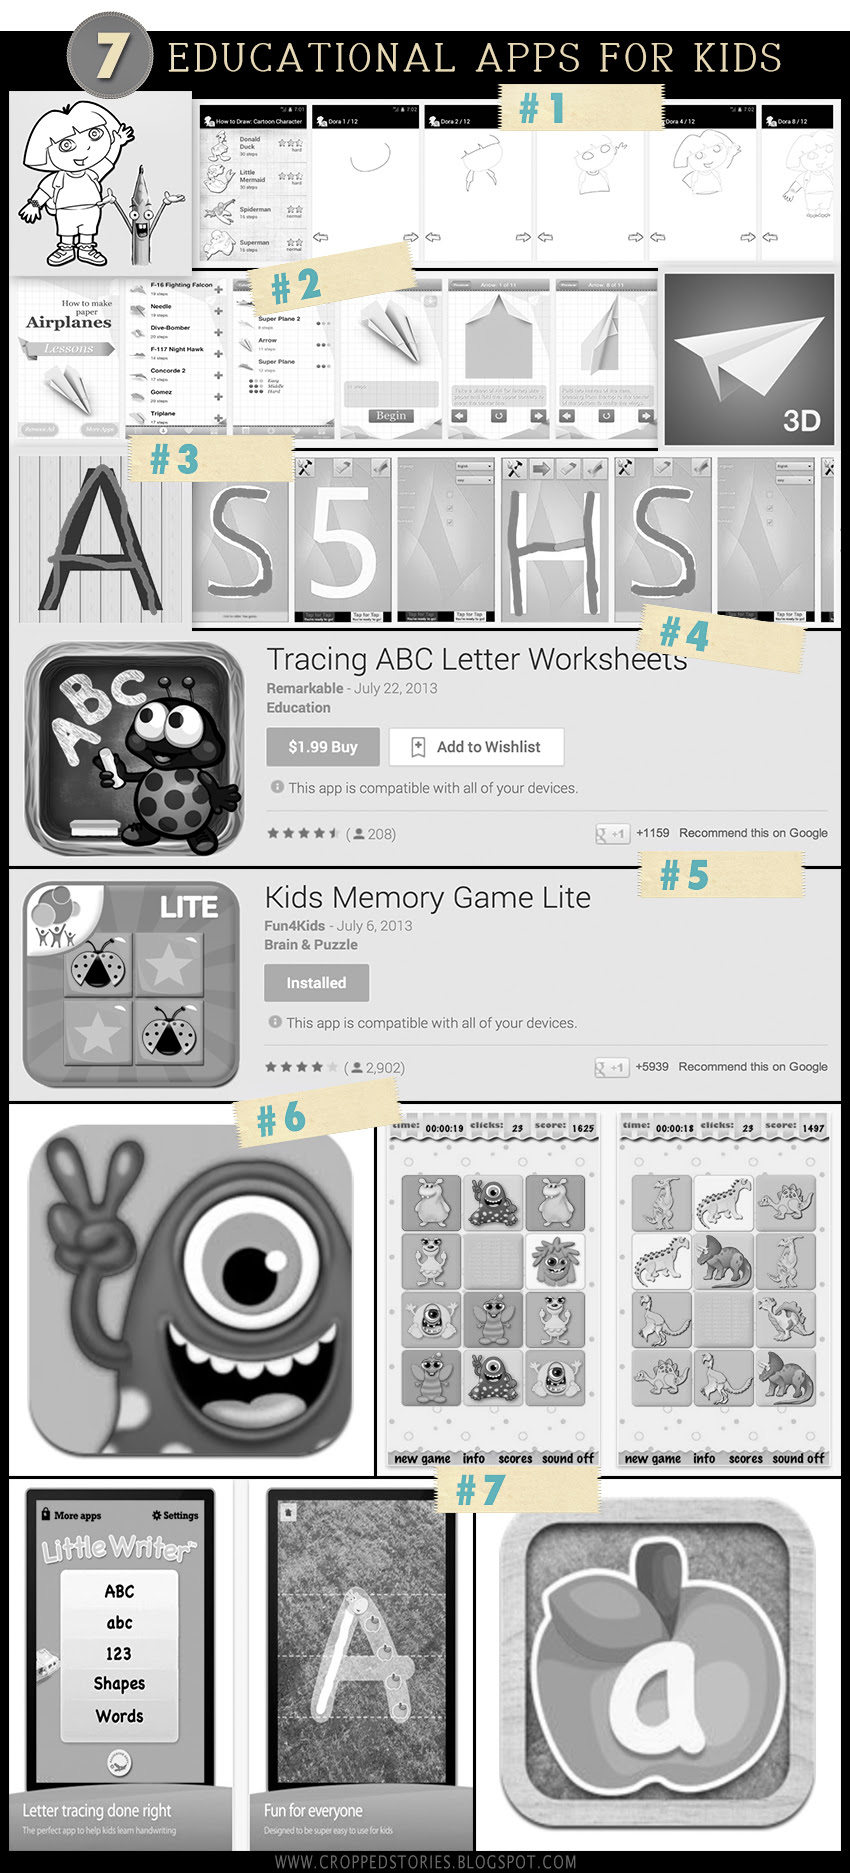 7 educational mobile applications for kids via Cropped Stories